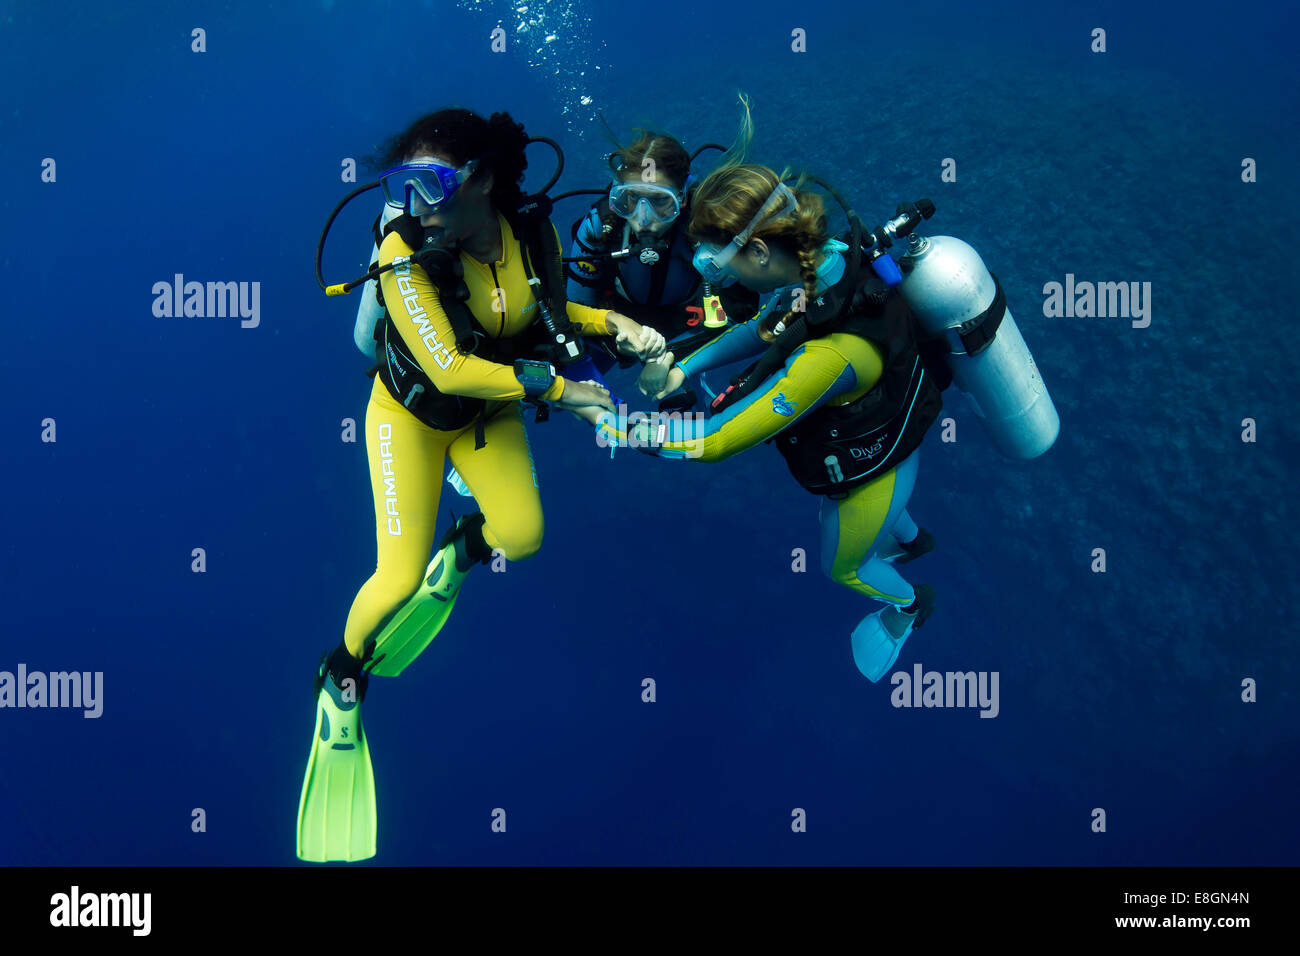 Group of scuba divers with colourful diving suits in the open water, Palawan, Philippines, Asia - Stock Image